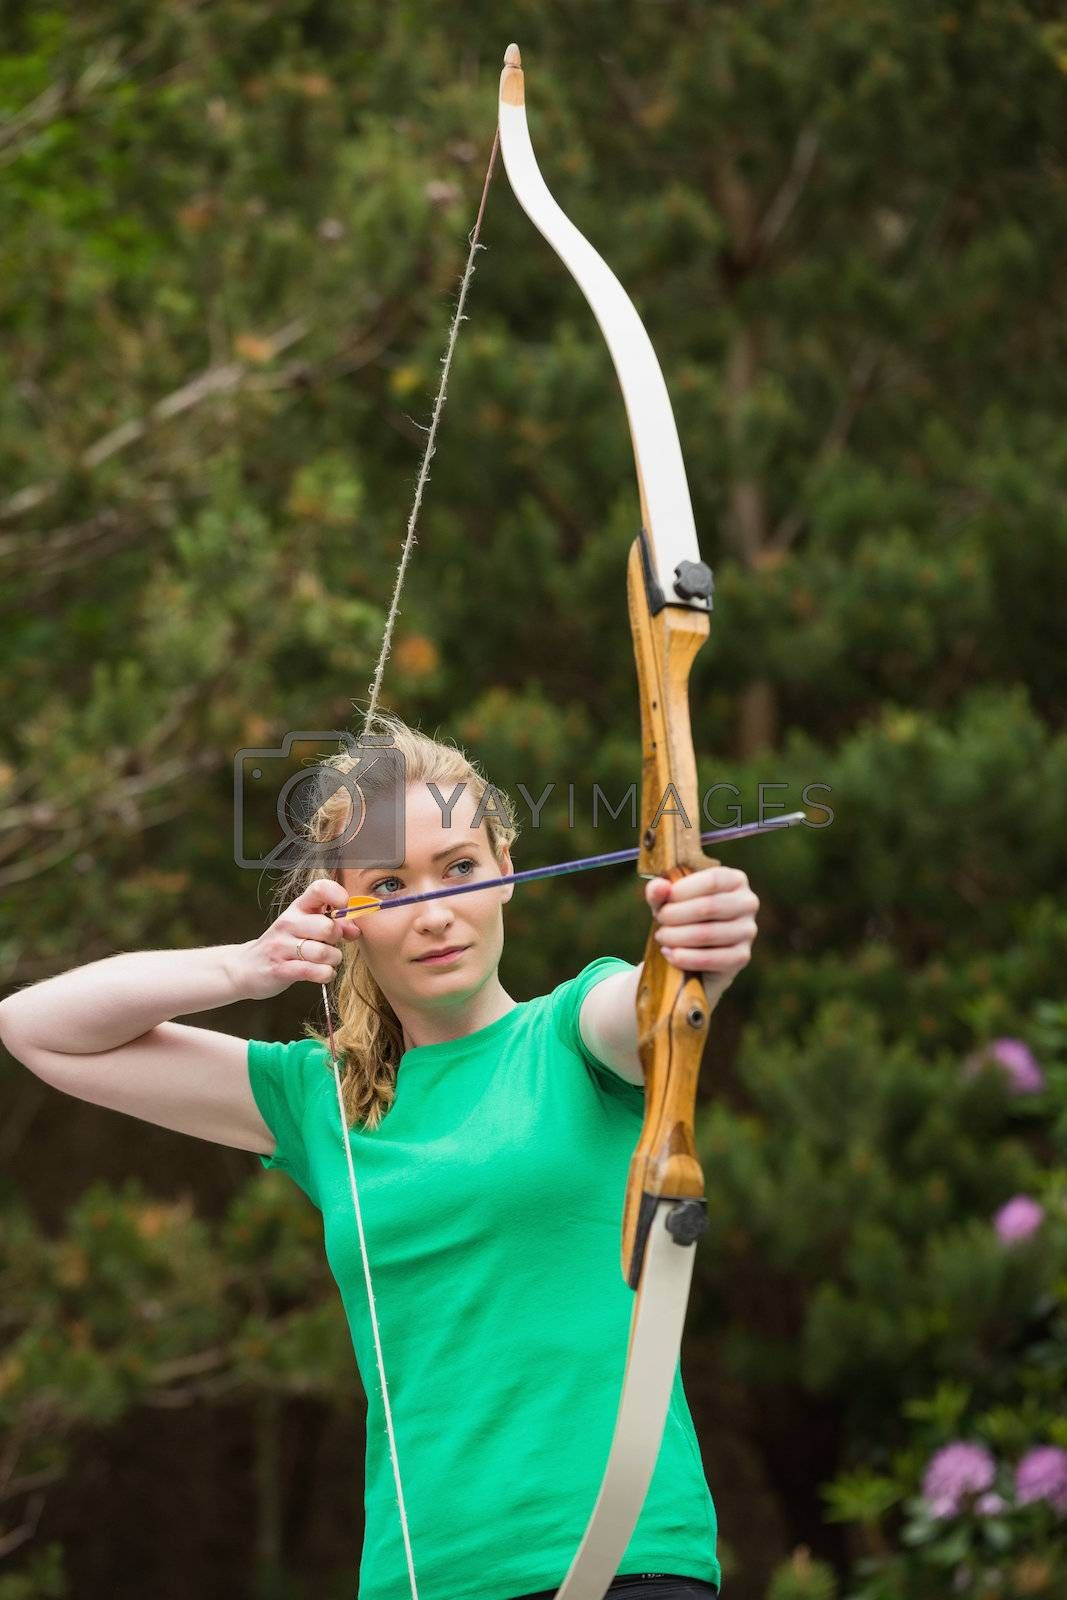 Concentrating blonde woman practicing archery by Wavebreakmedia